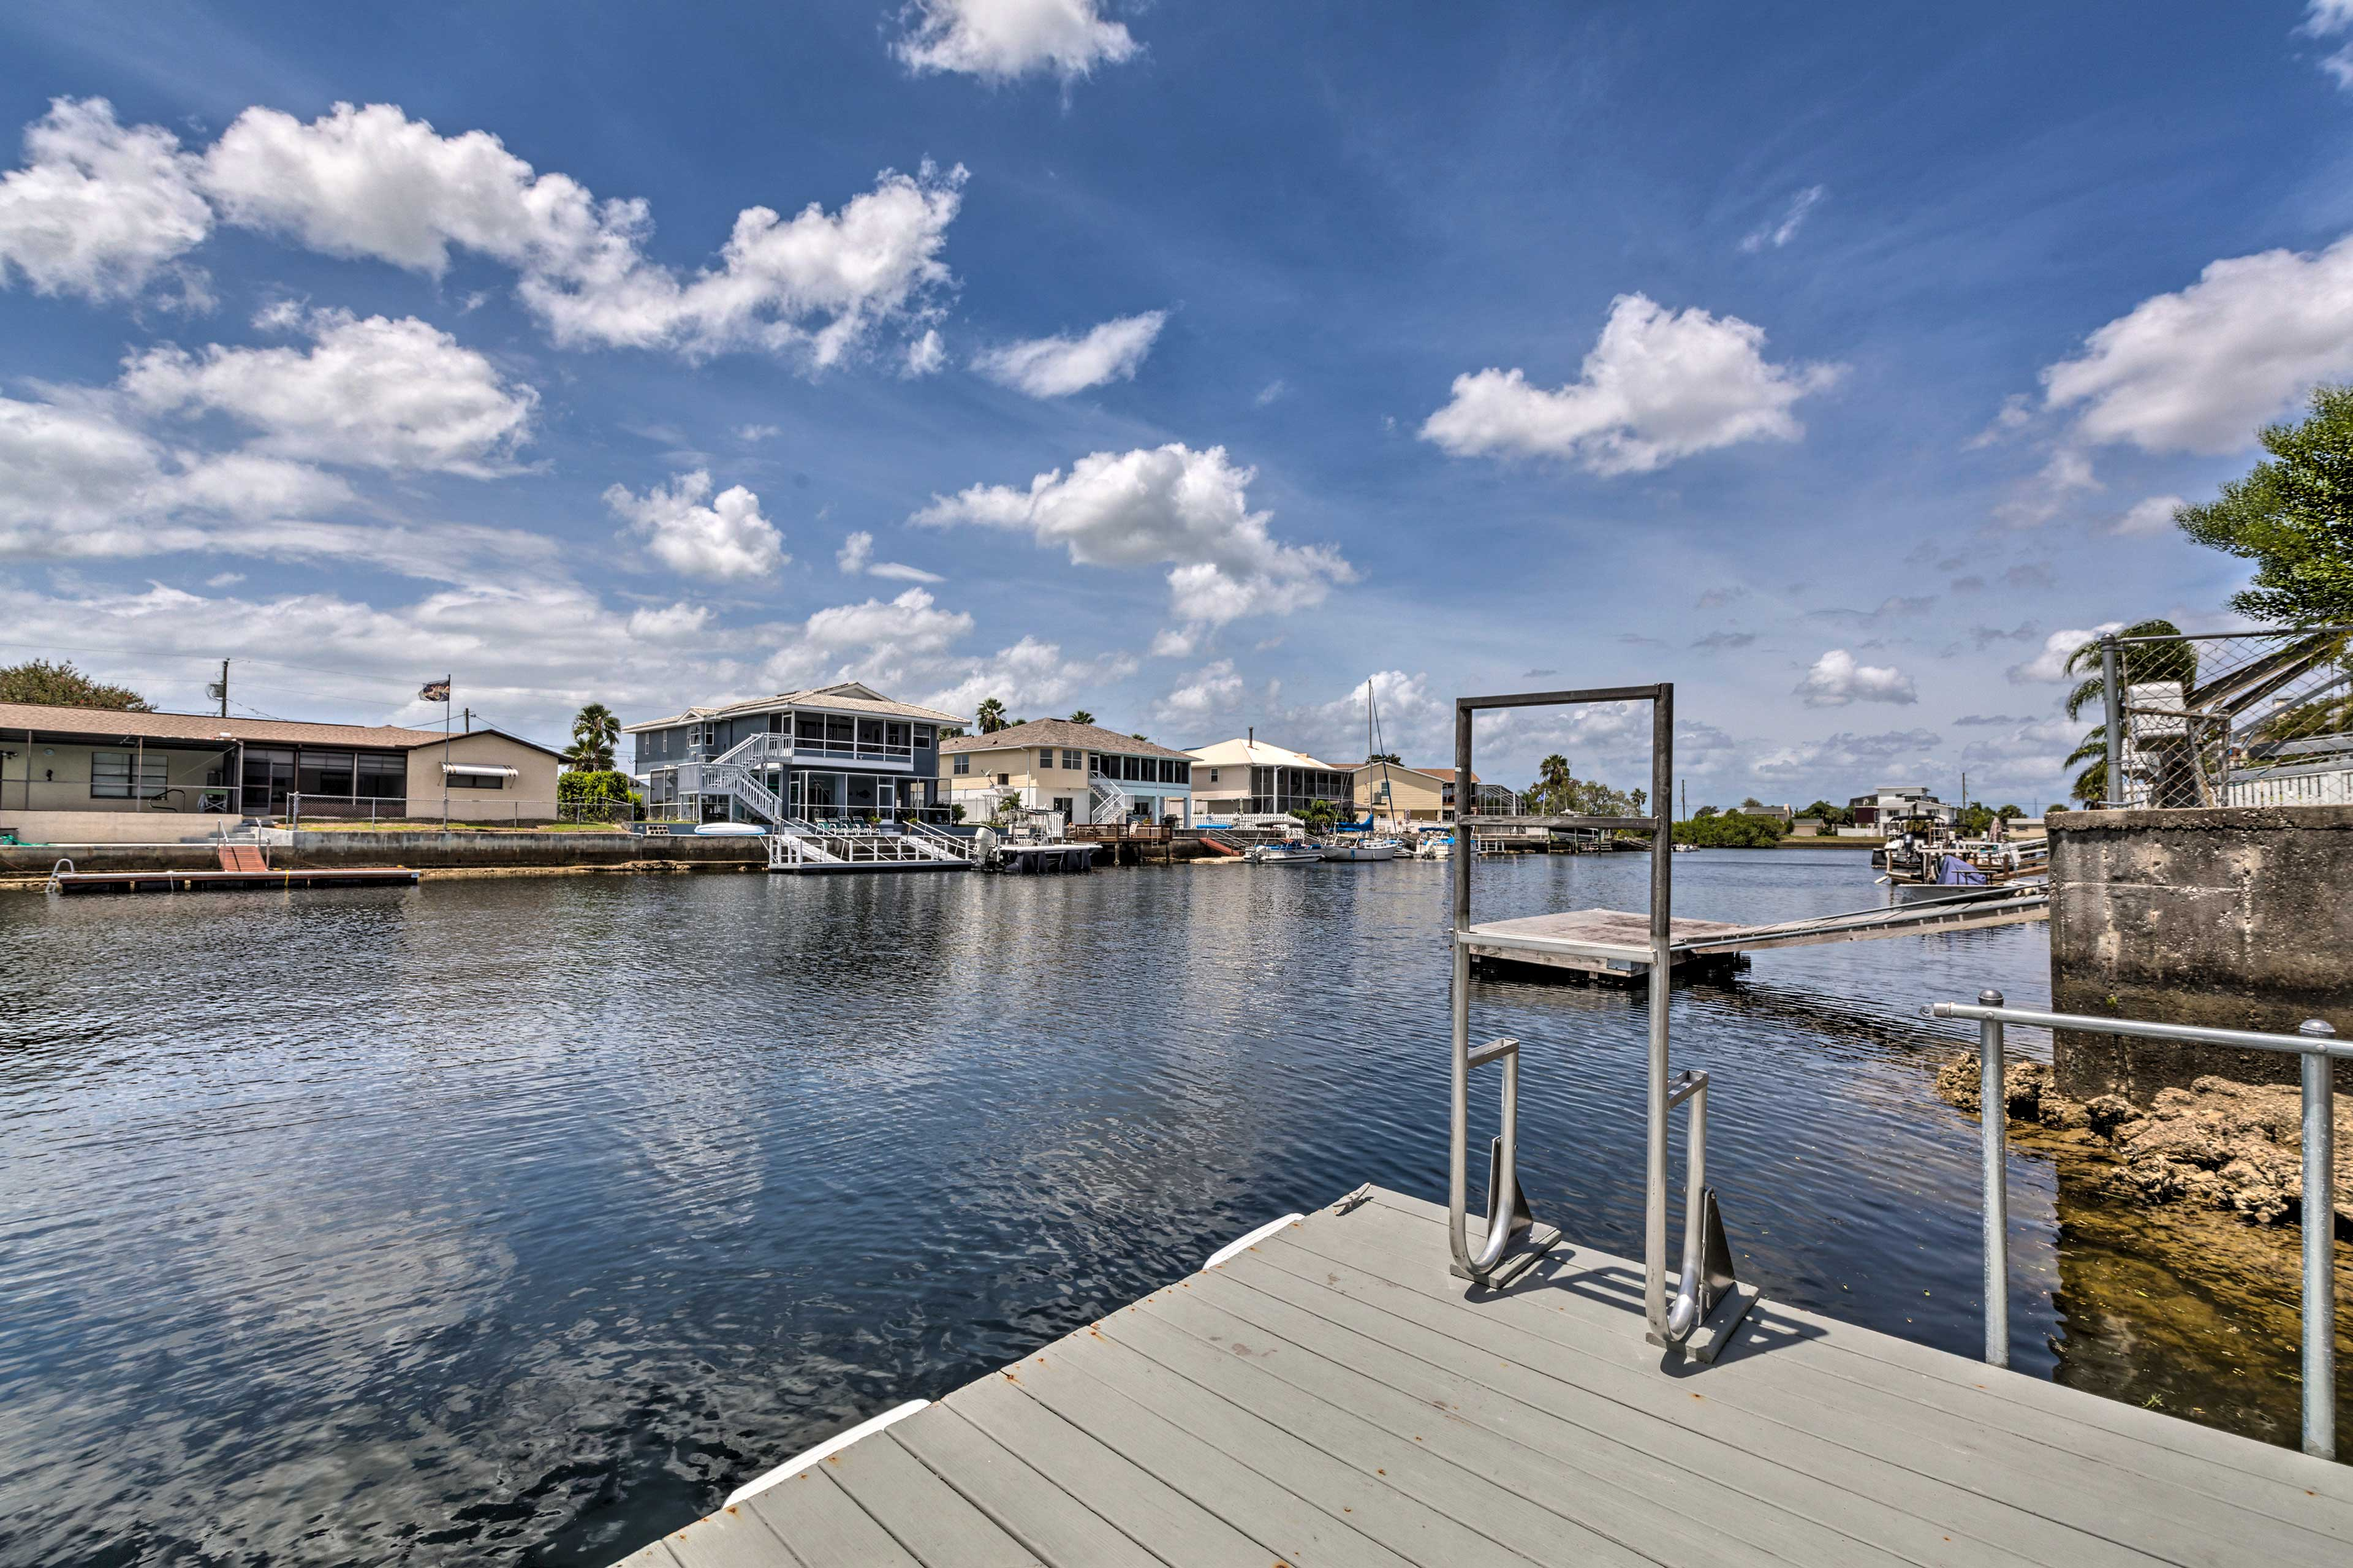 This beach house is ideally situated near beaches, restaurants, and more!